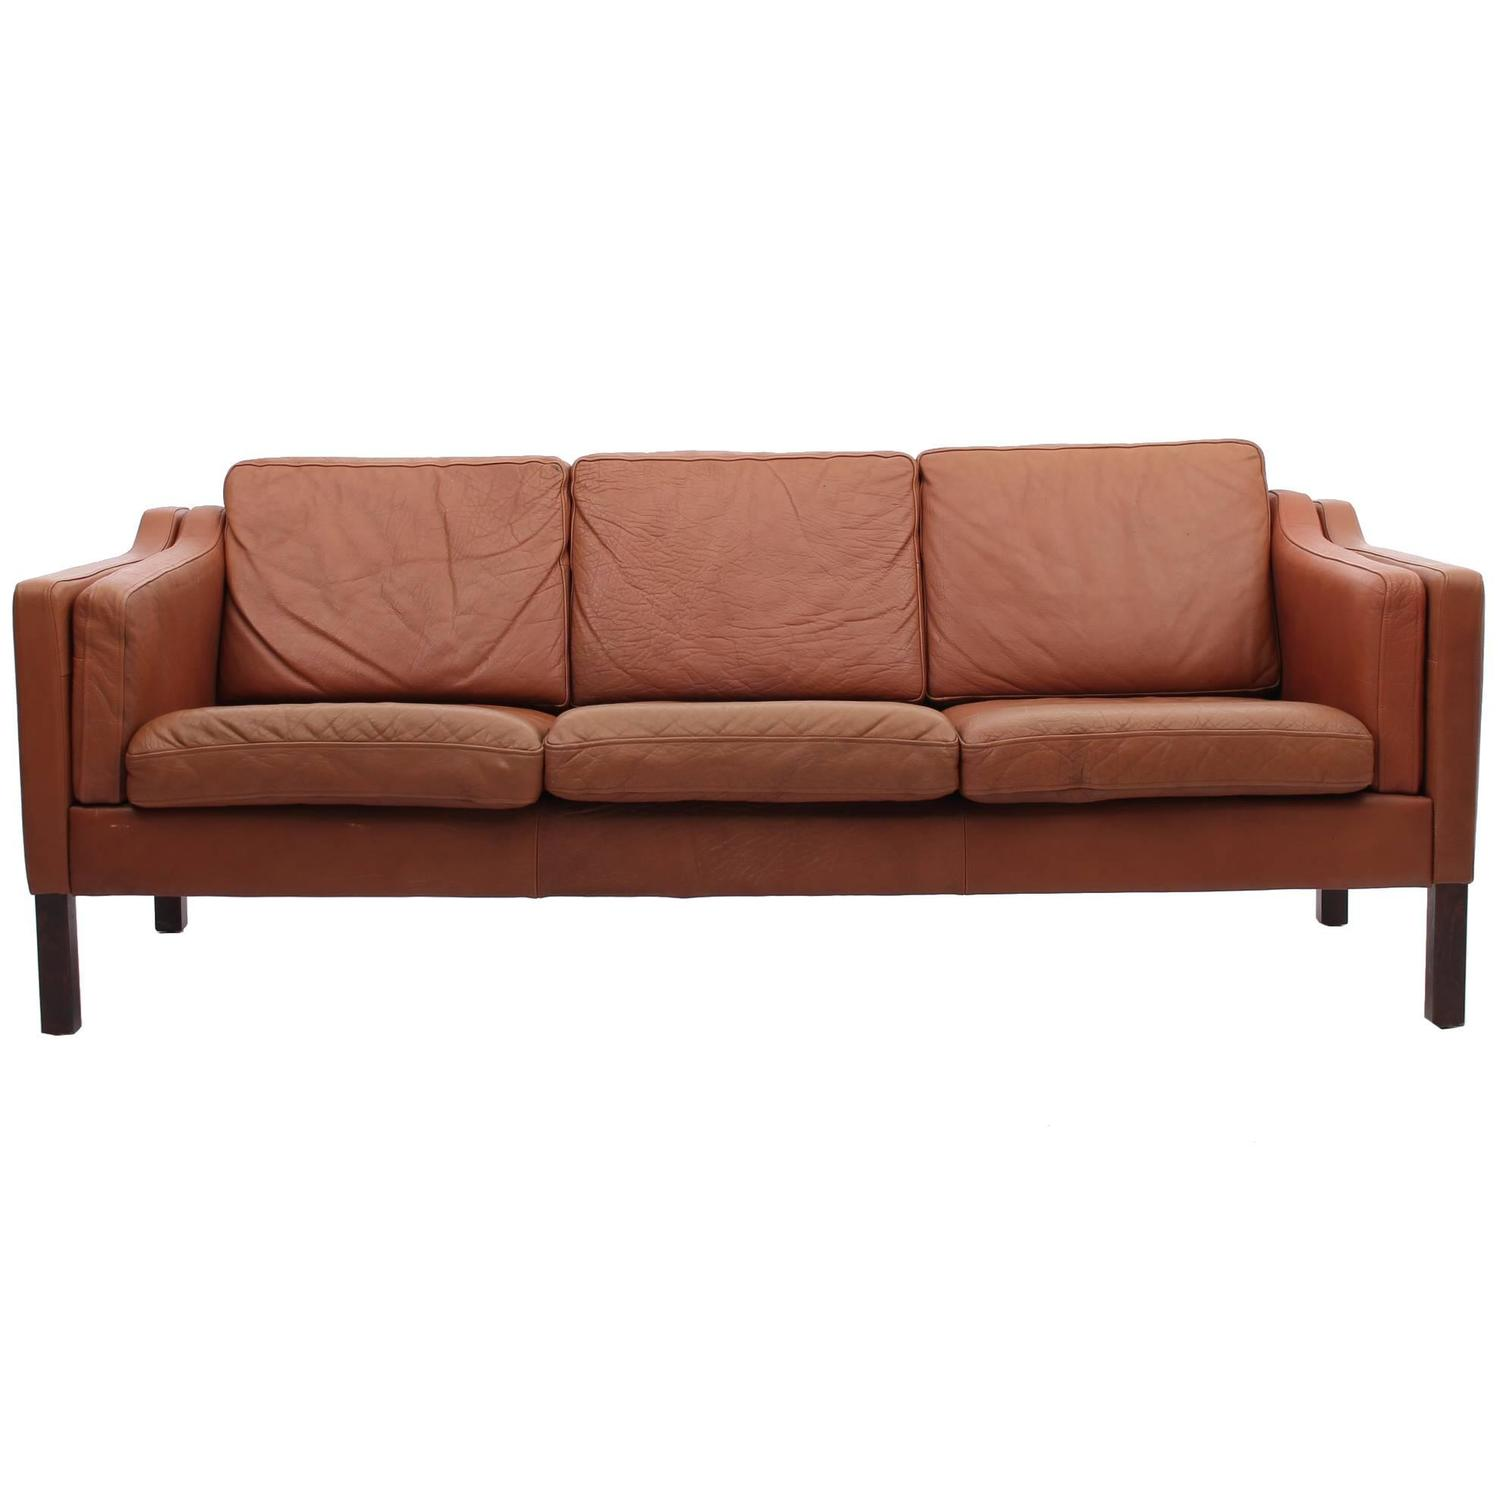 chestnut brown leather sofa danish mid century modern at 1stdibs